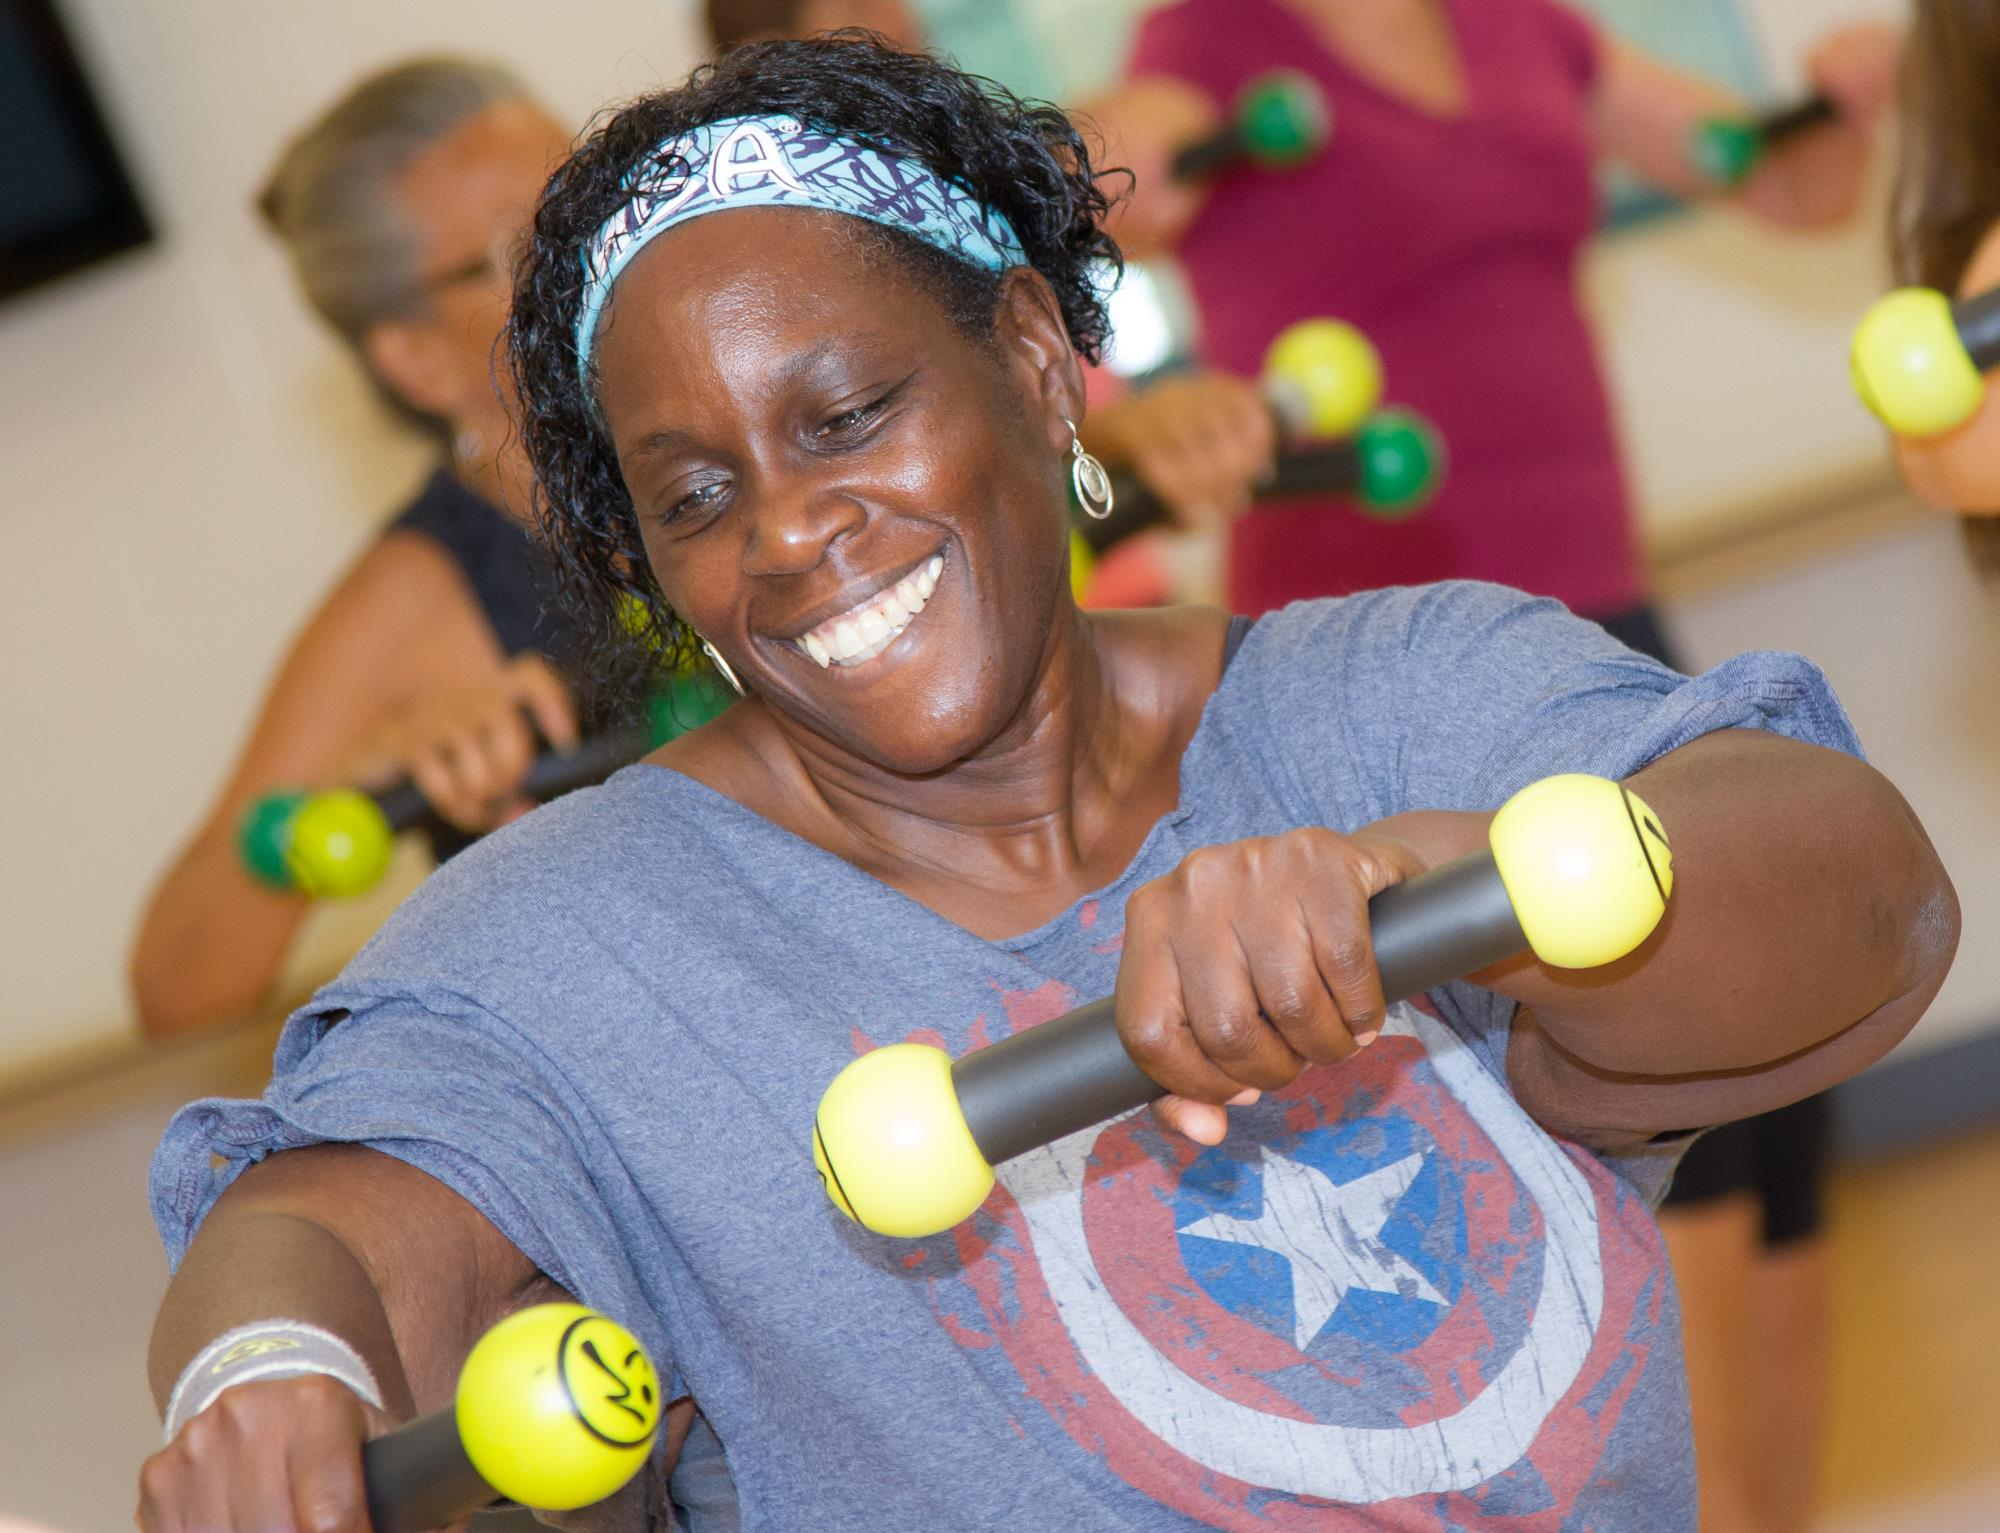 Woman doing Zumba with weights